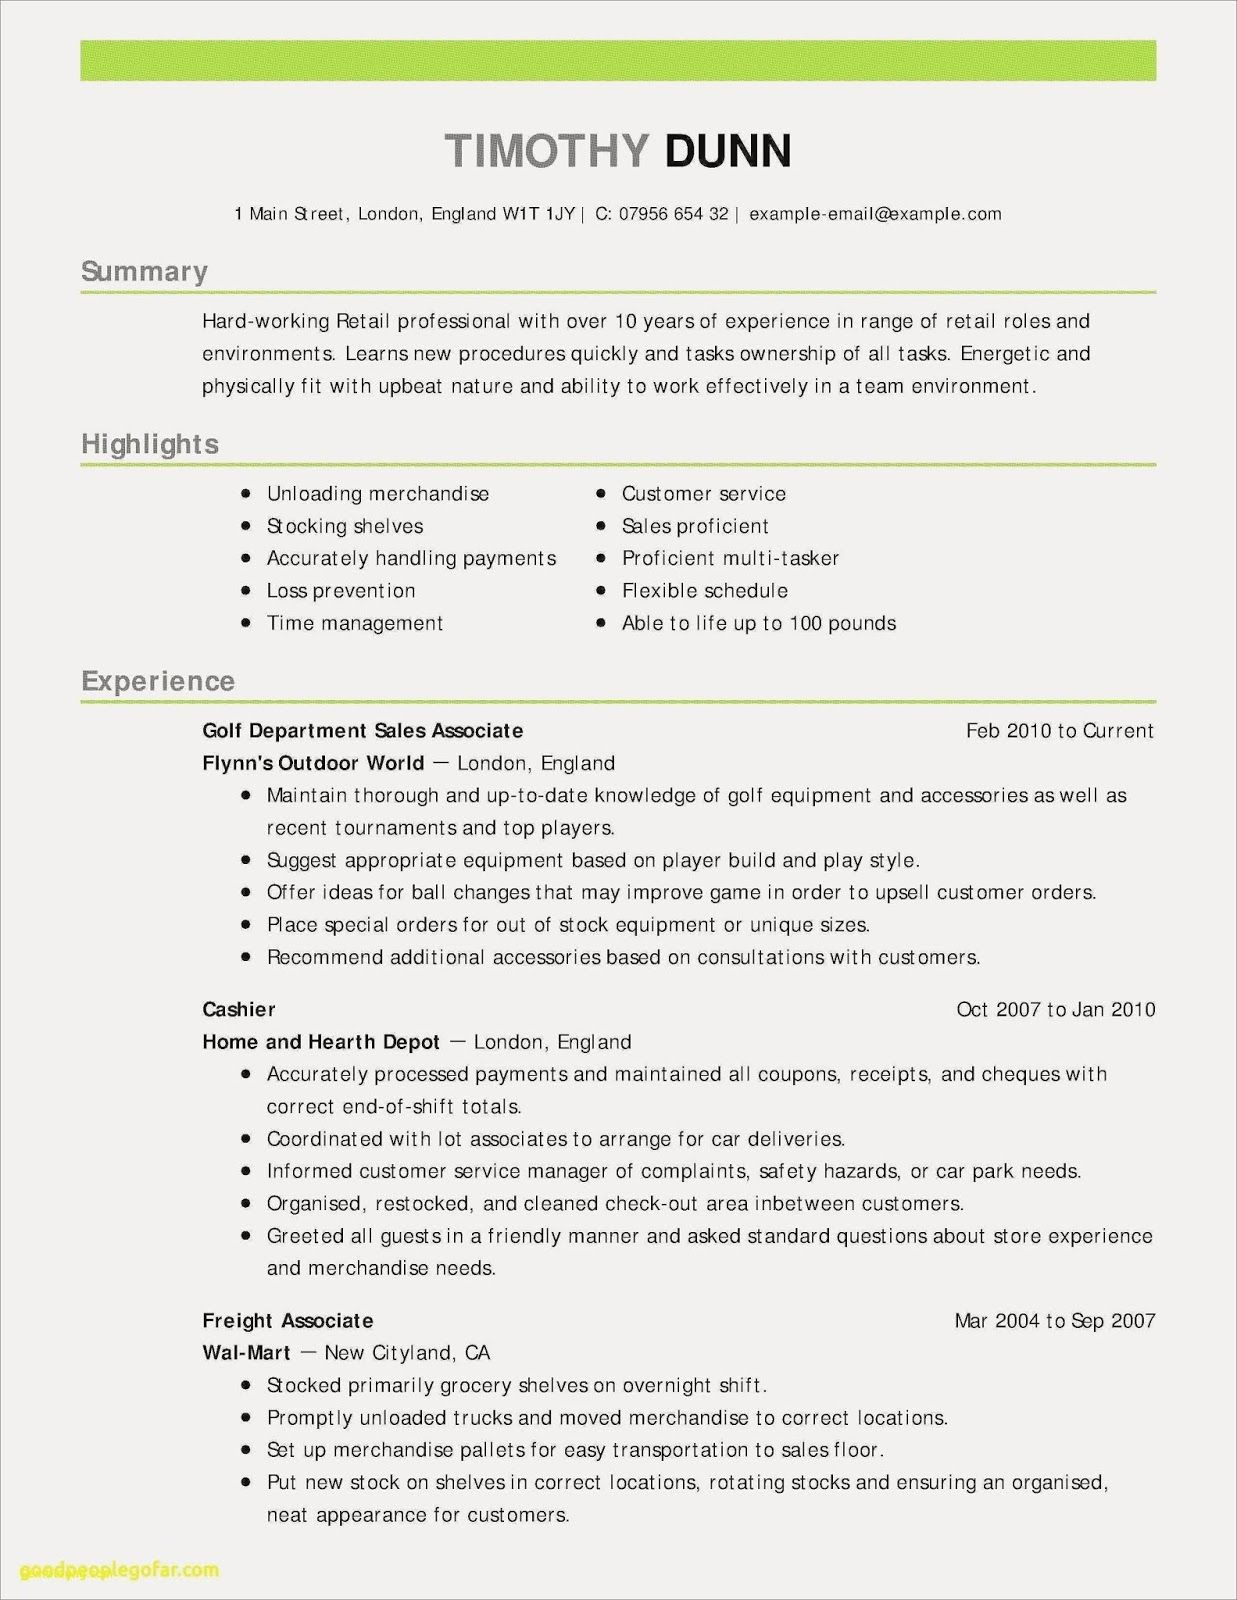 Secretary Resume Examples Secretary Resume Examples 2019 Secretary Resume Exa Resume Objective Examples Good Resume Examples Customer Service Resume Examples